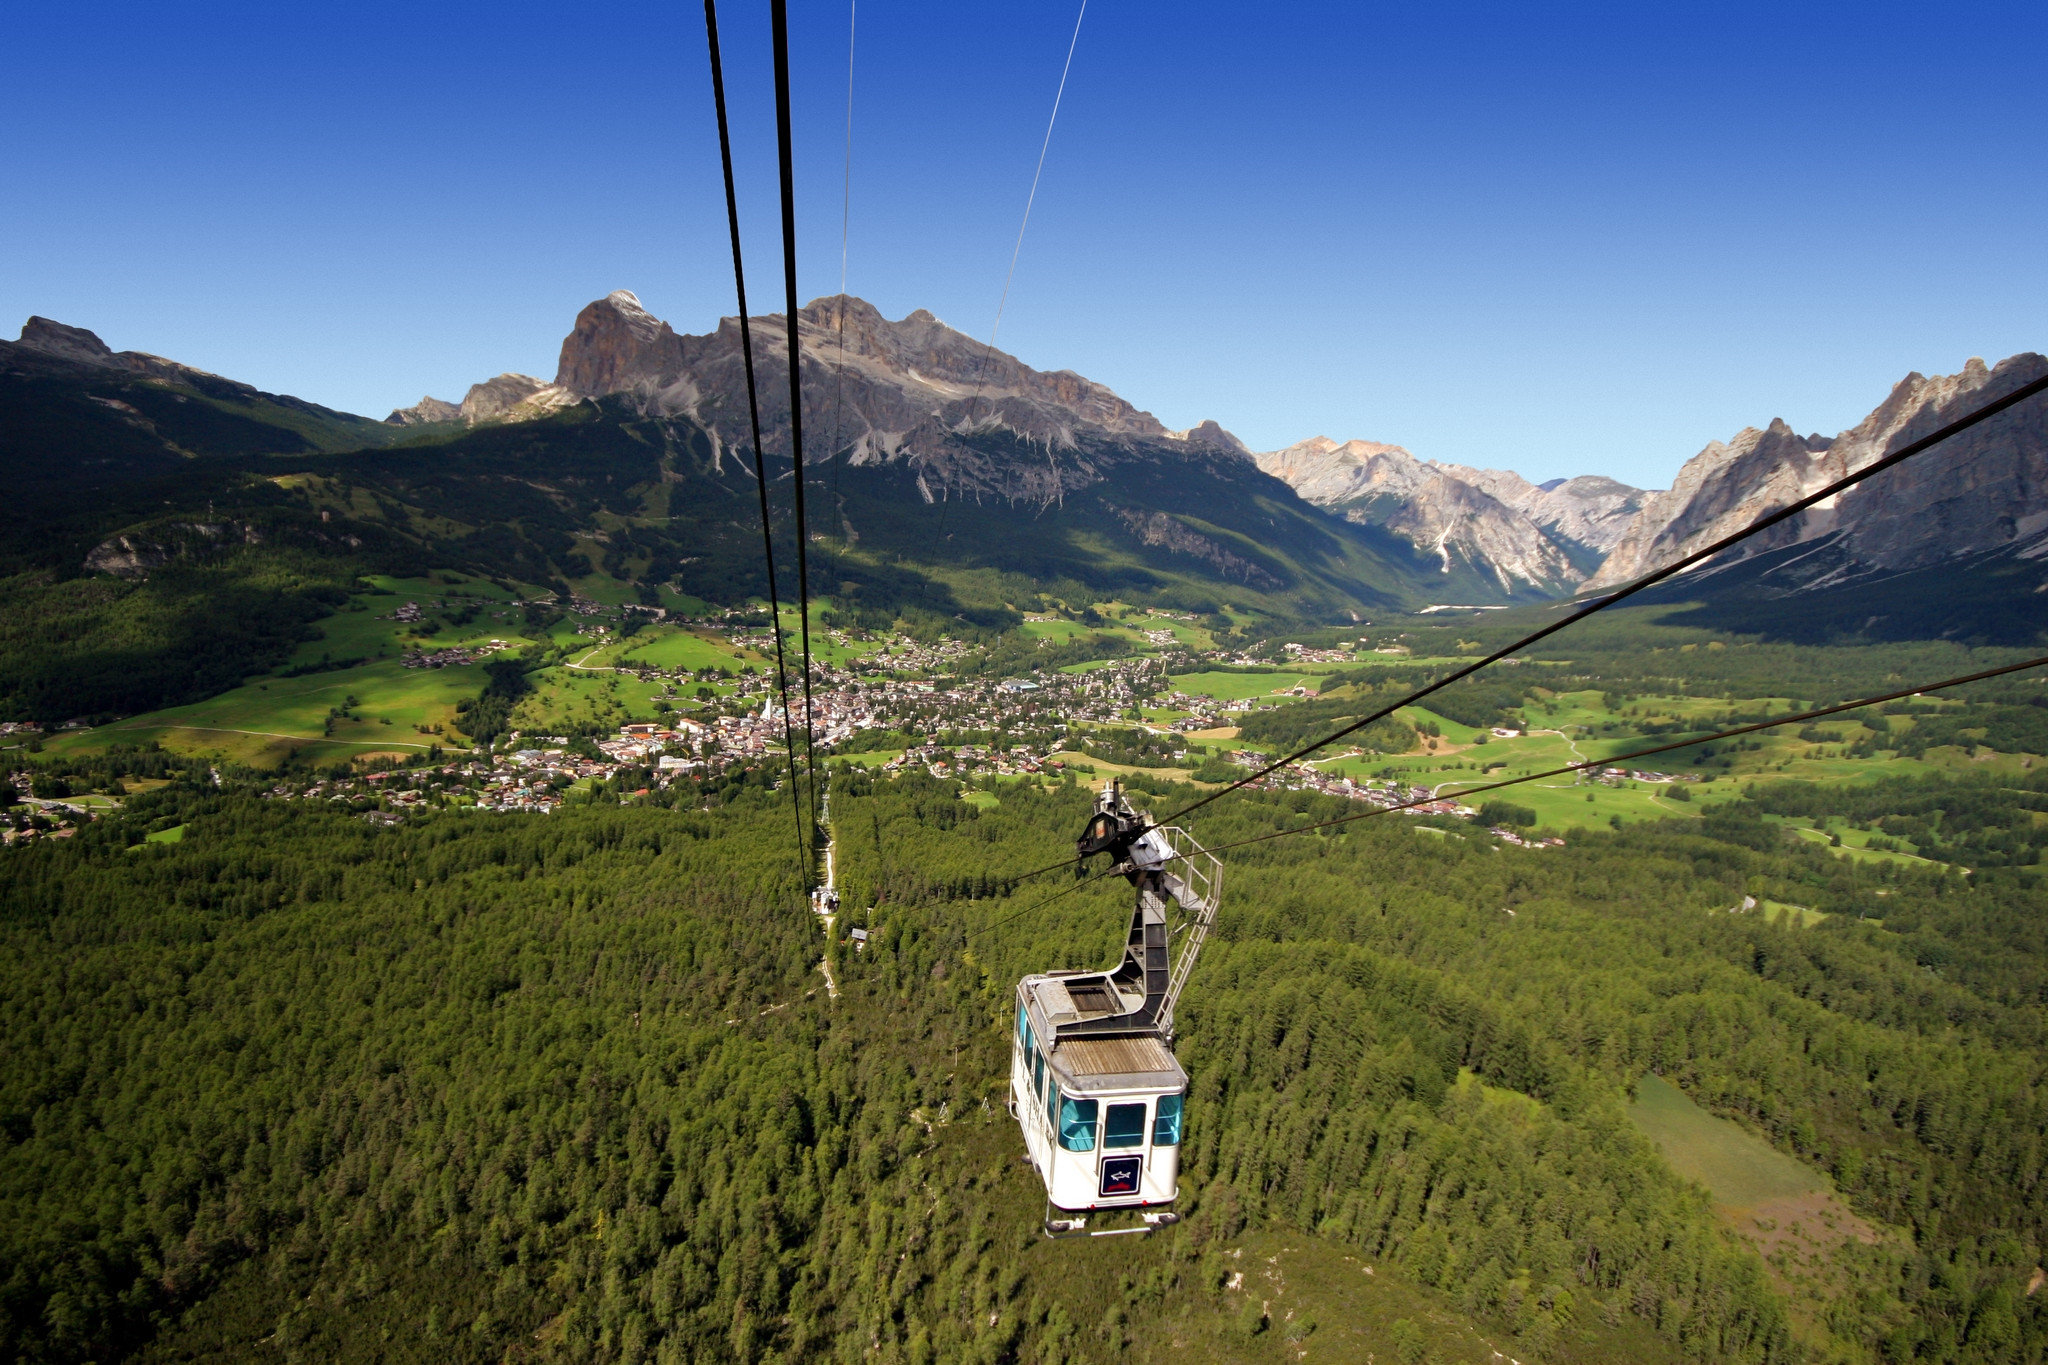 The cableway will be environmentally sound when reopened ©Nidec